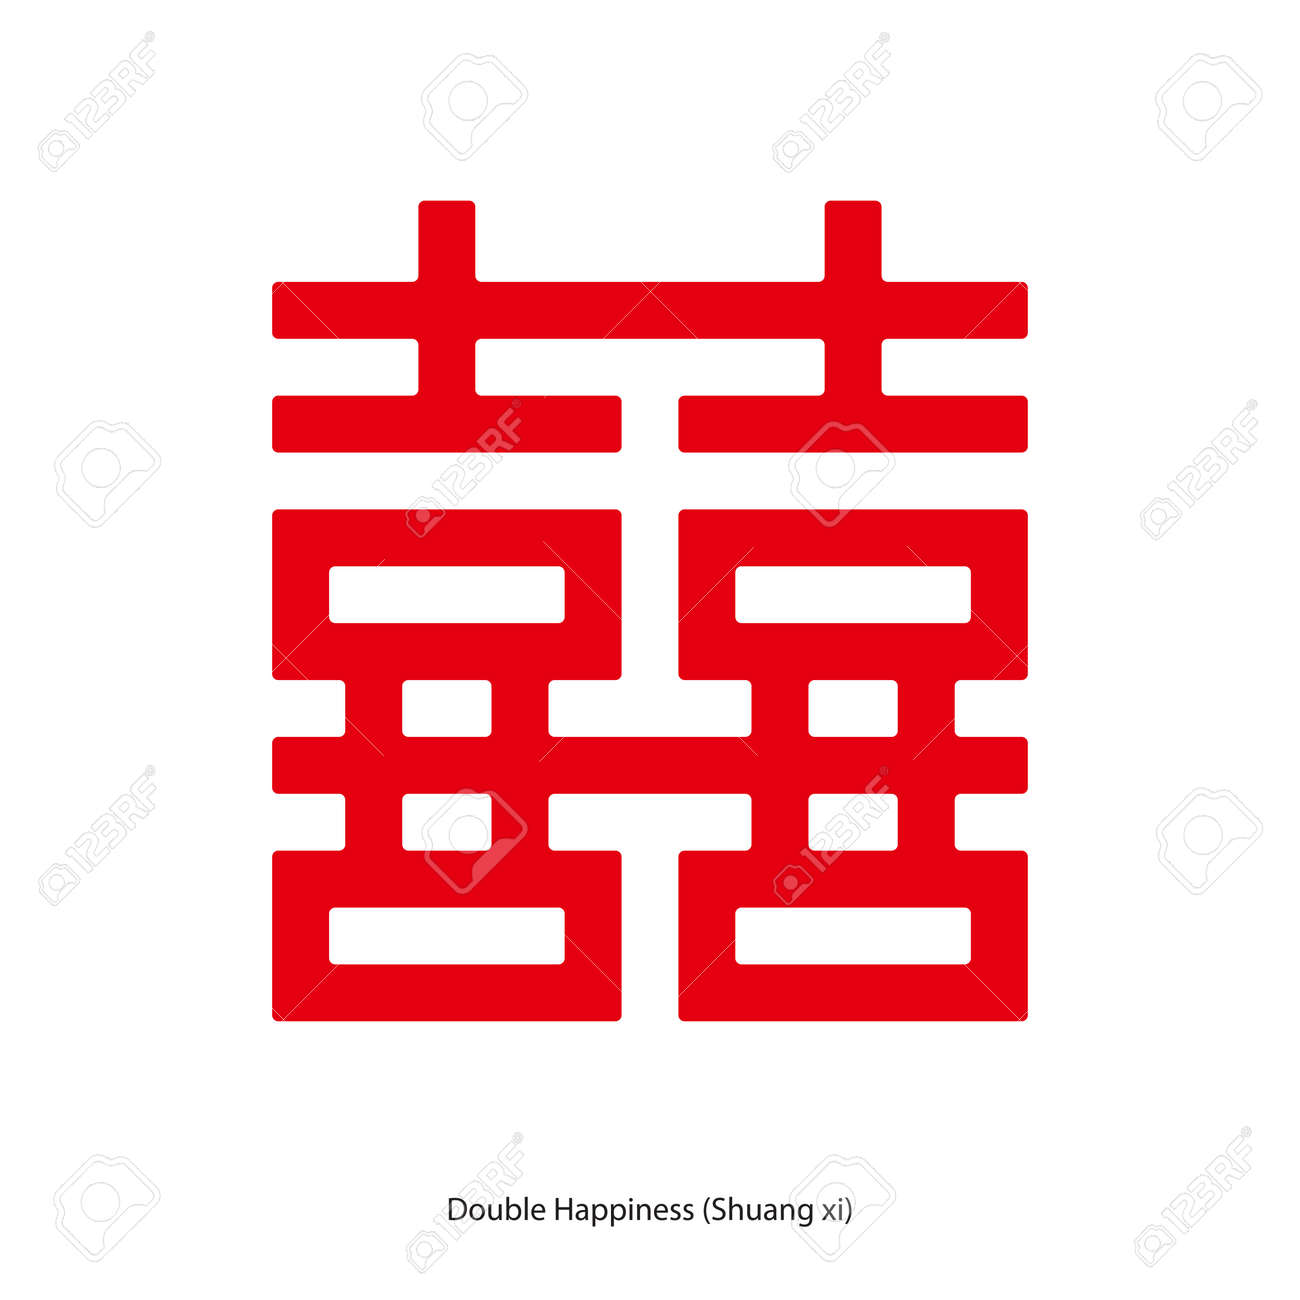 Chinese Character Double Happiness In Square Shape Chinese